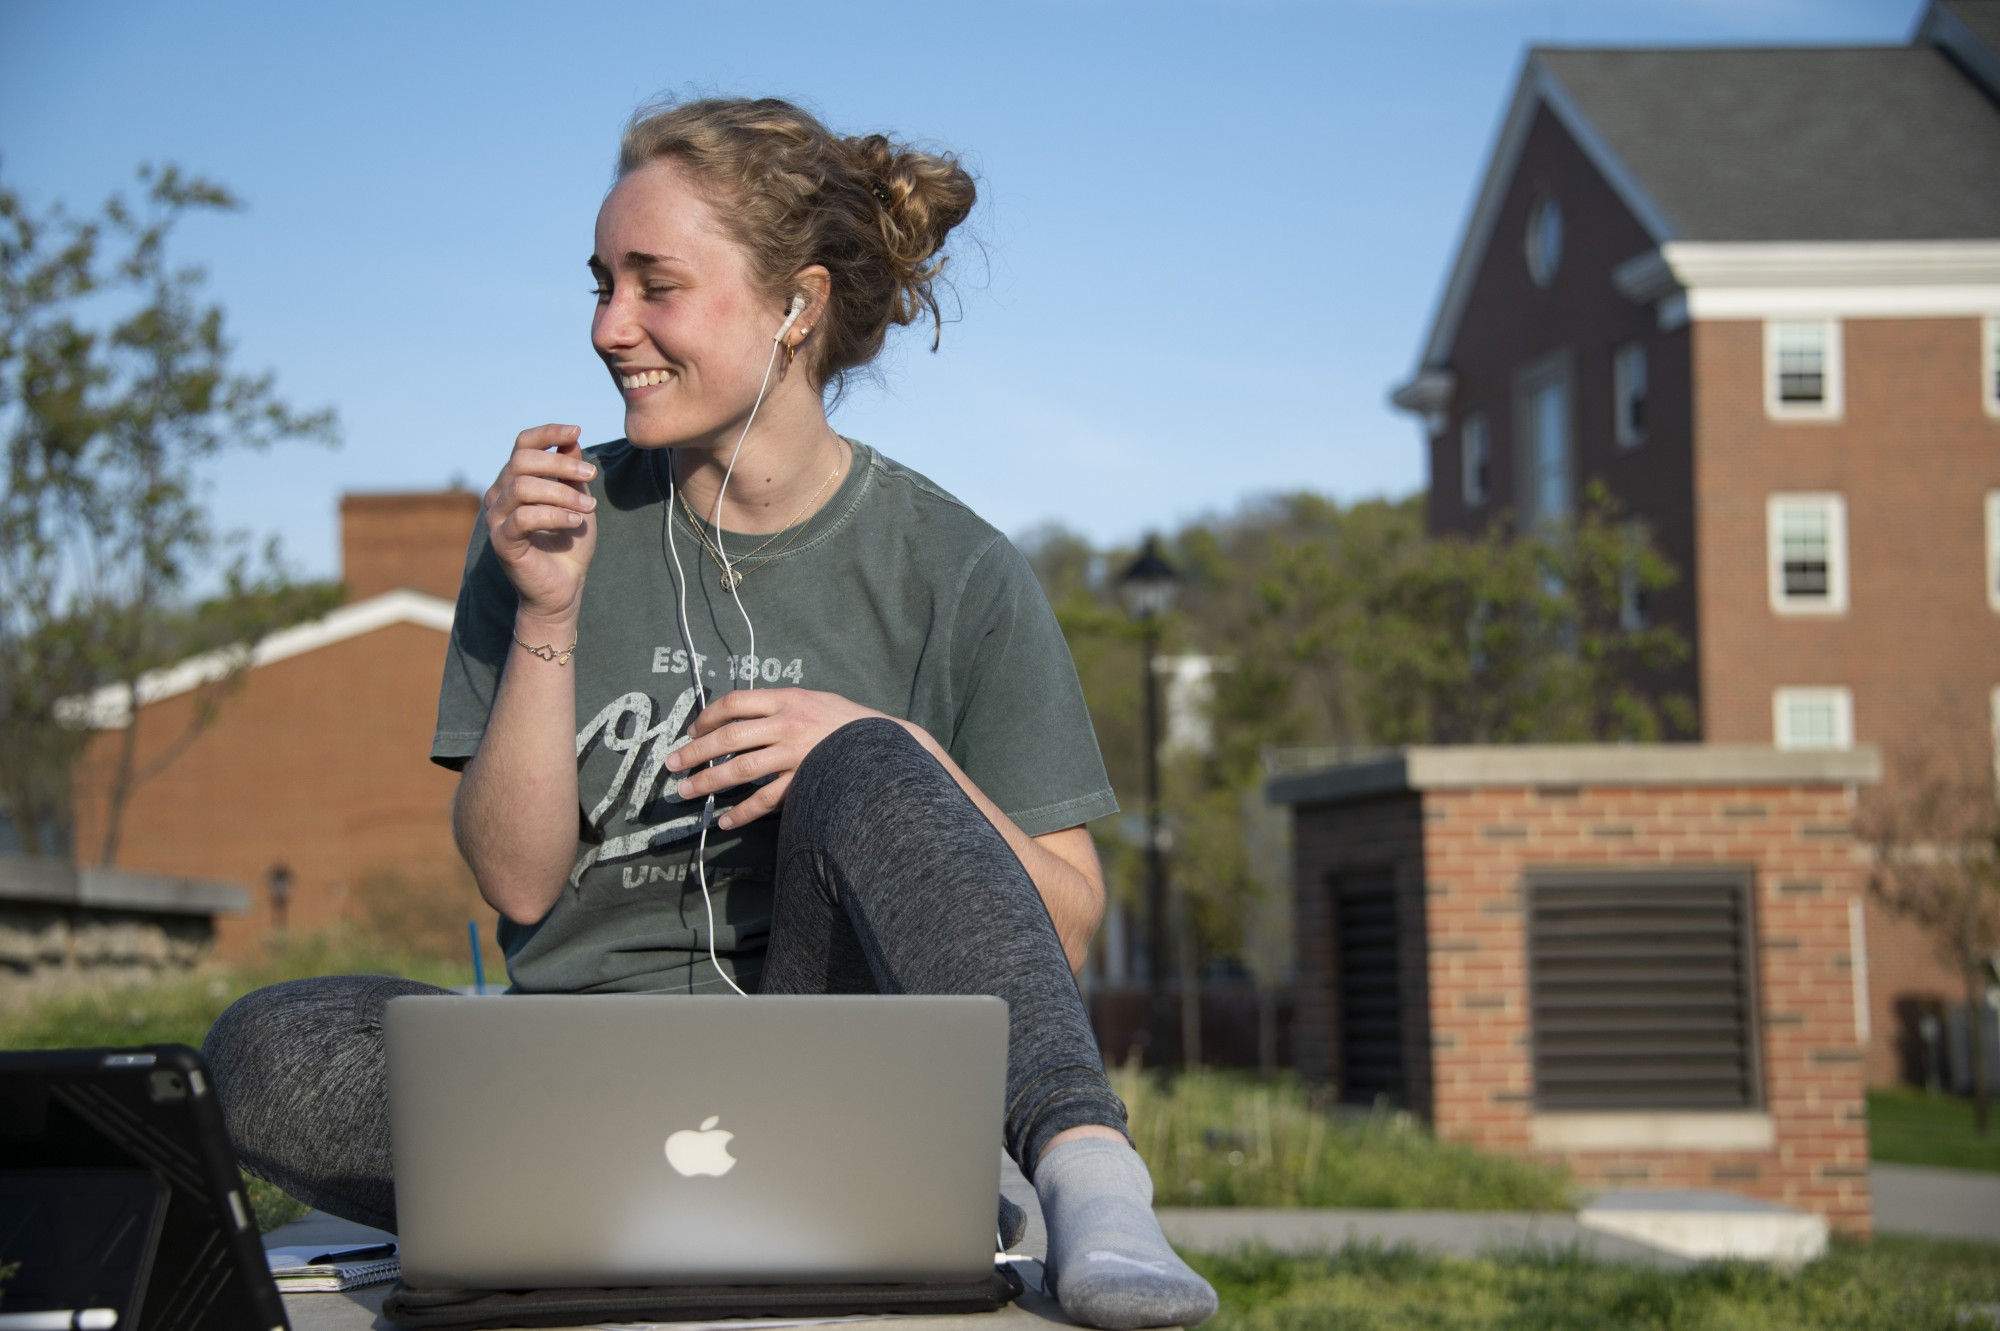 Anna Zeitzheim, a sophomore at Ohio University, studies outside while listening to music on April 13, 2021. Anna listens to music while studying to block out distractions around her and to make herself feel more at ease when working on assignments for a stressful class.